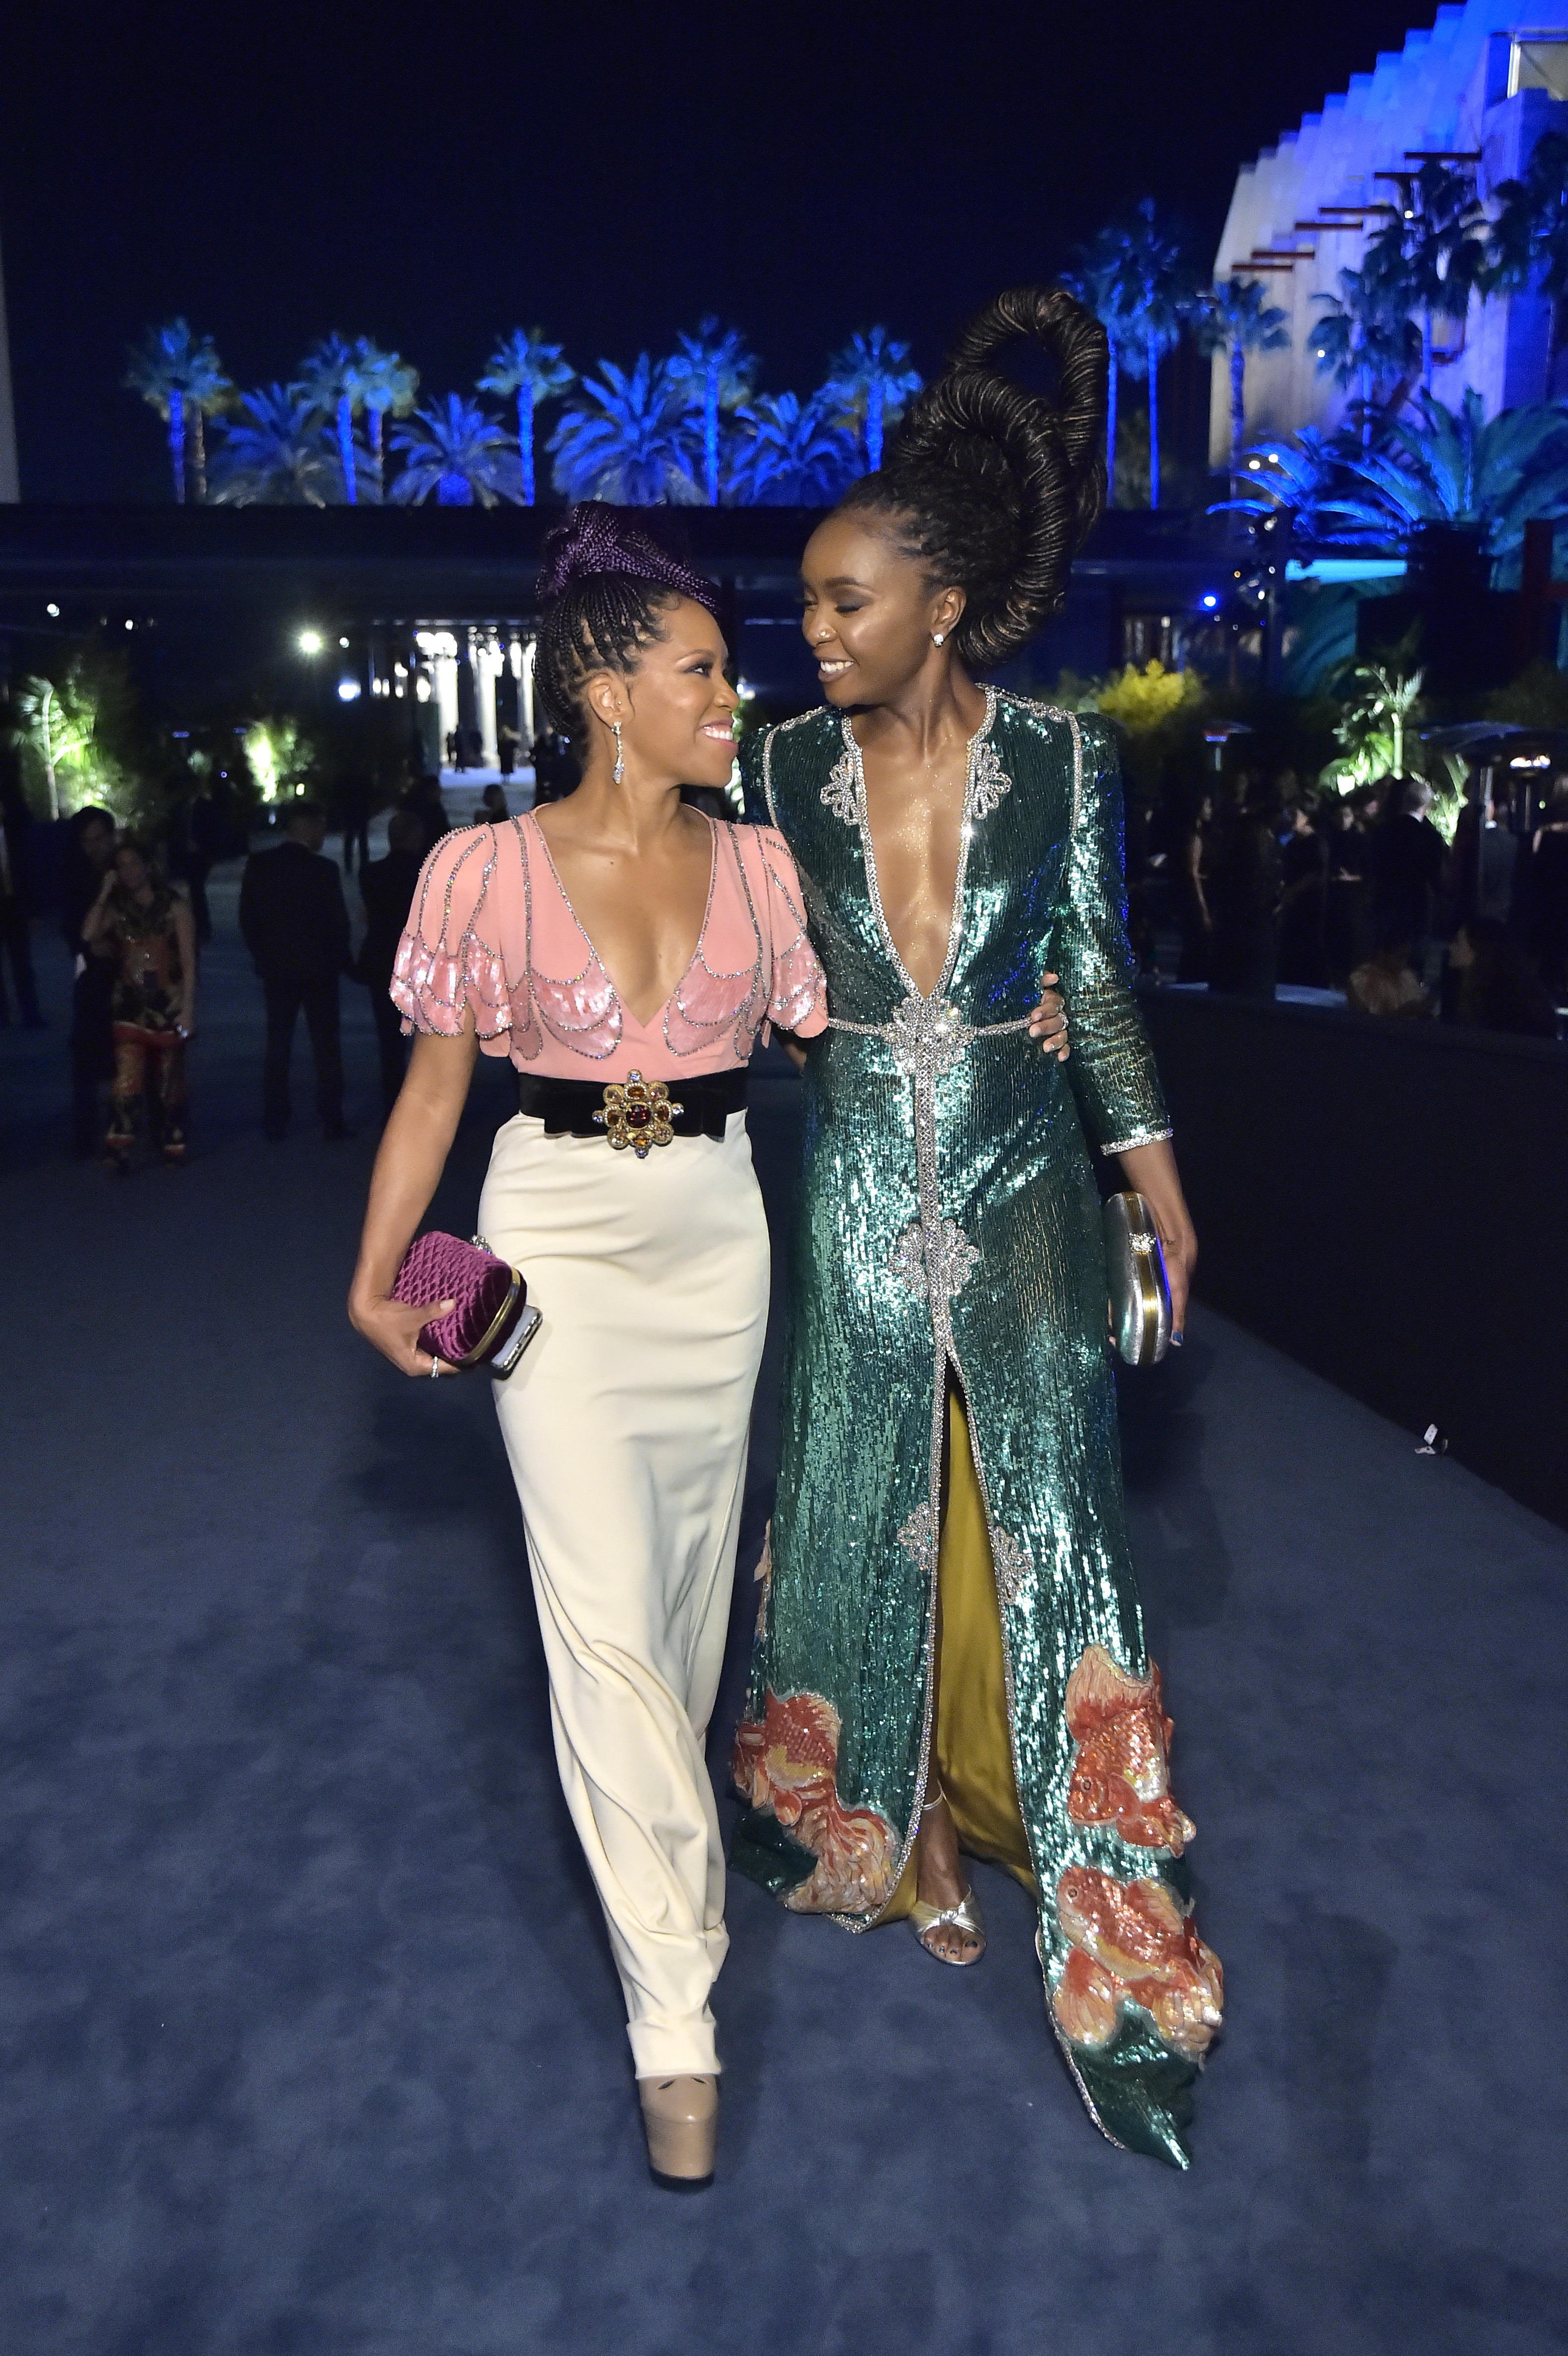 Regina King and KiKi Layne, photo by Stefanie Keenan/Getty Images for LACMA